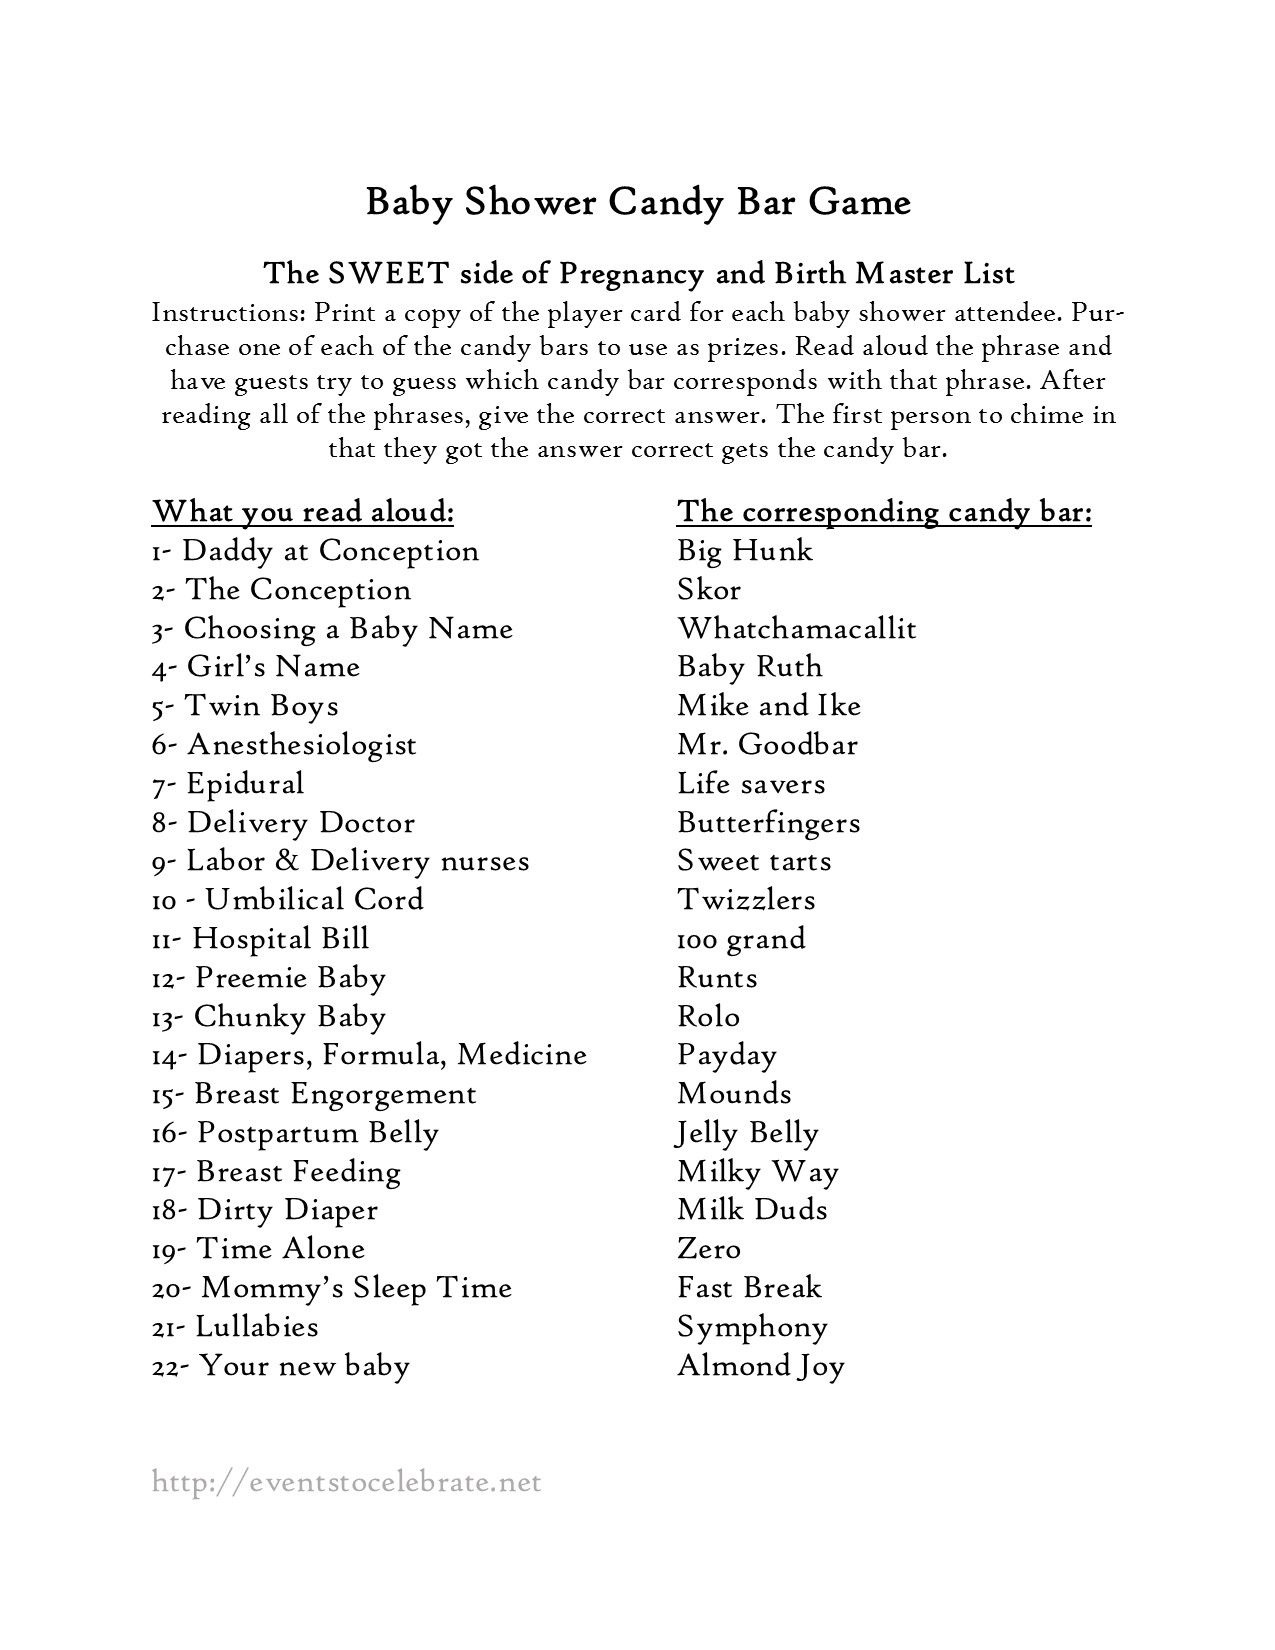 Baby Shower Games | Baby Shower | Baby Shower Games, Baby Shower - Candy Bar Baby Shower Game Free Printable